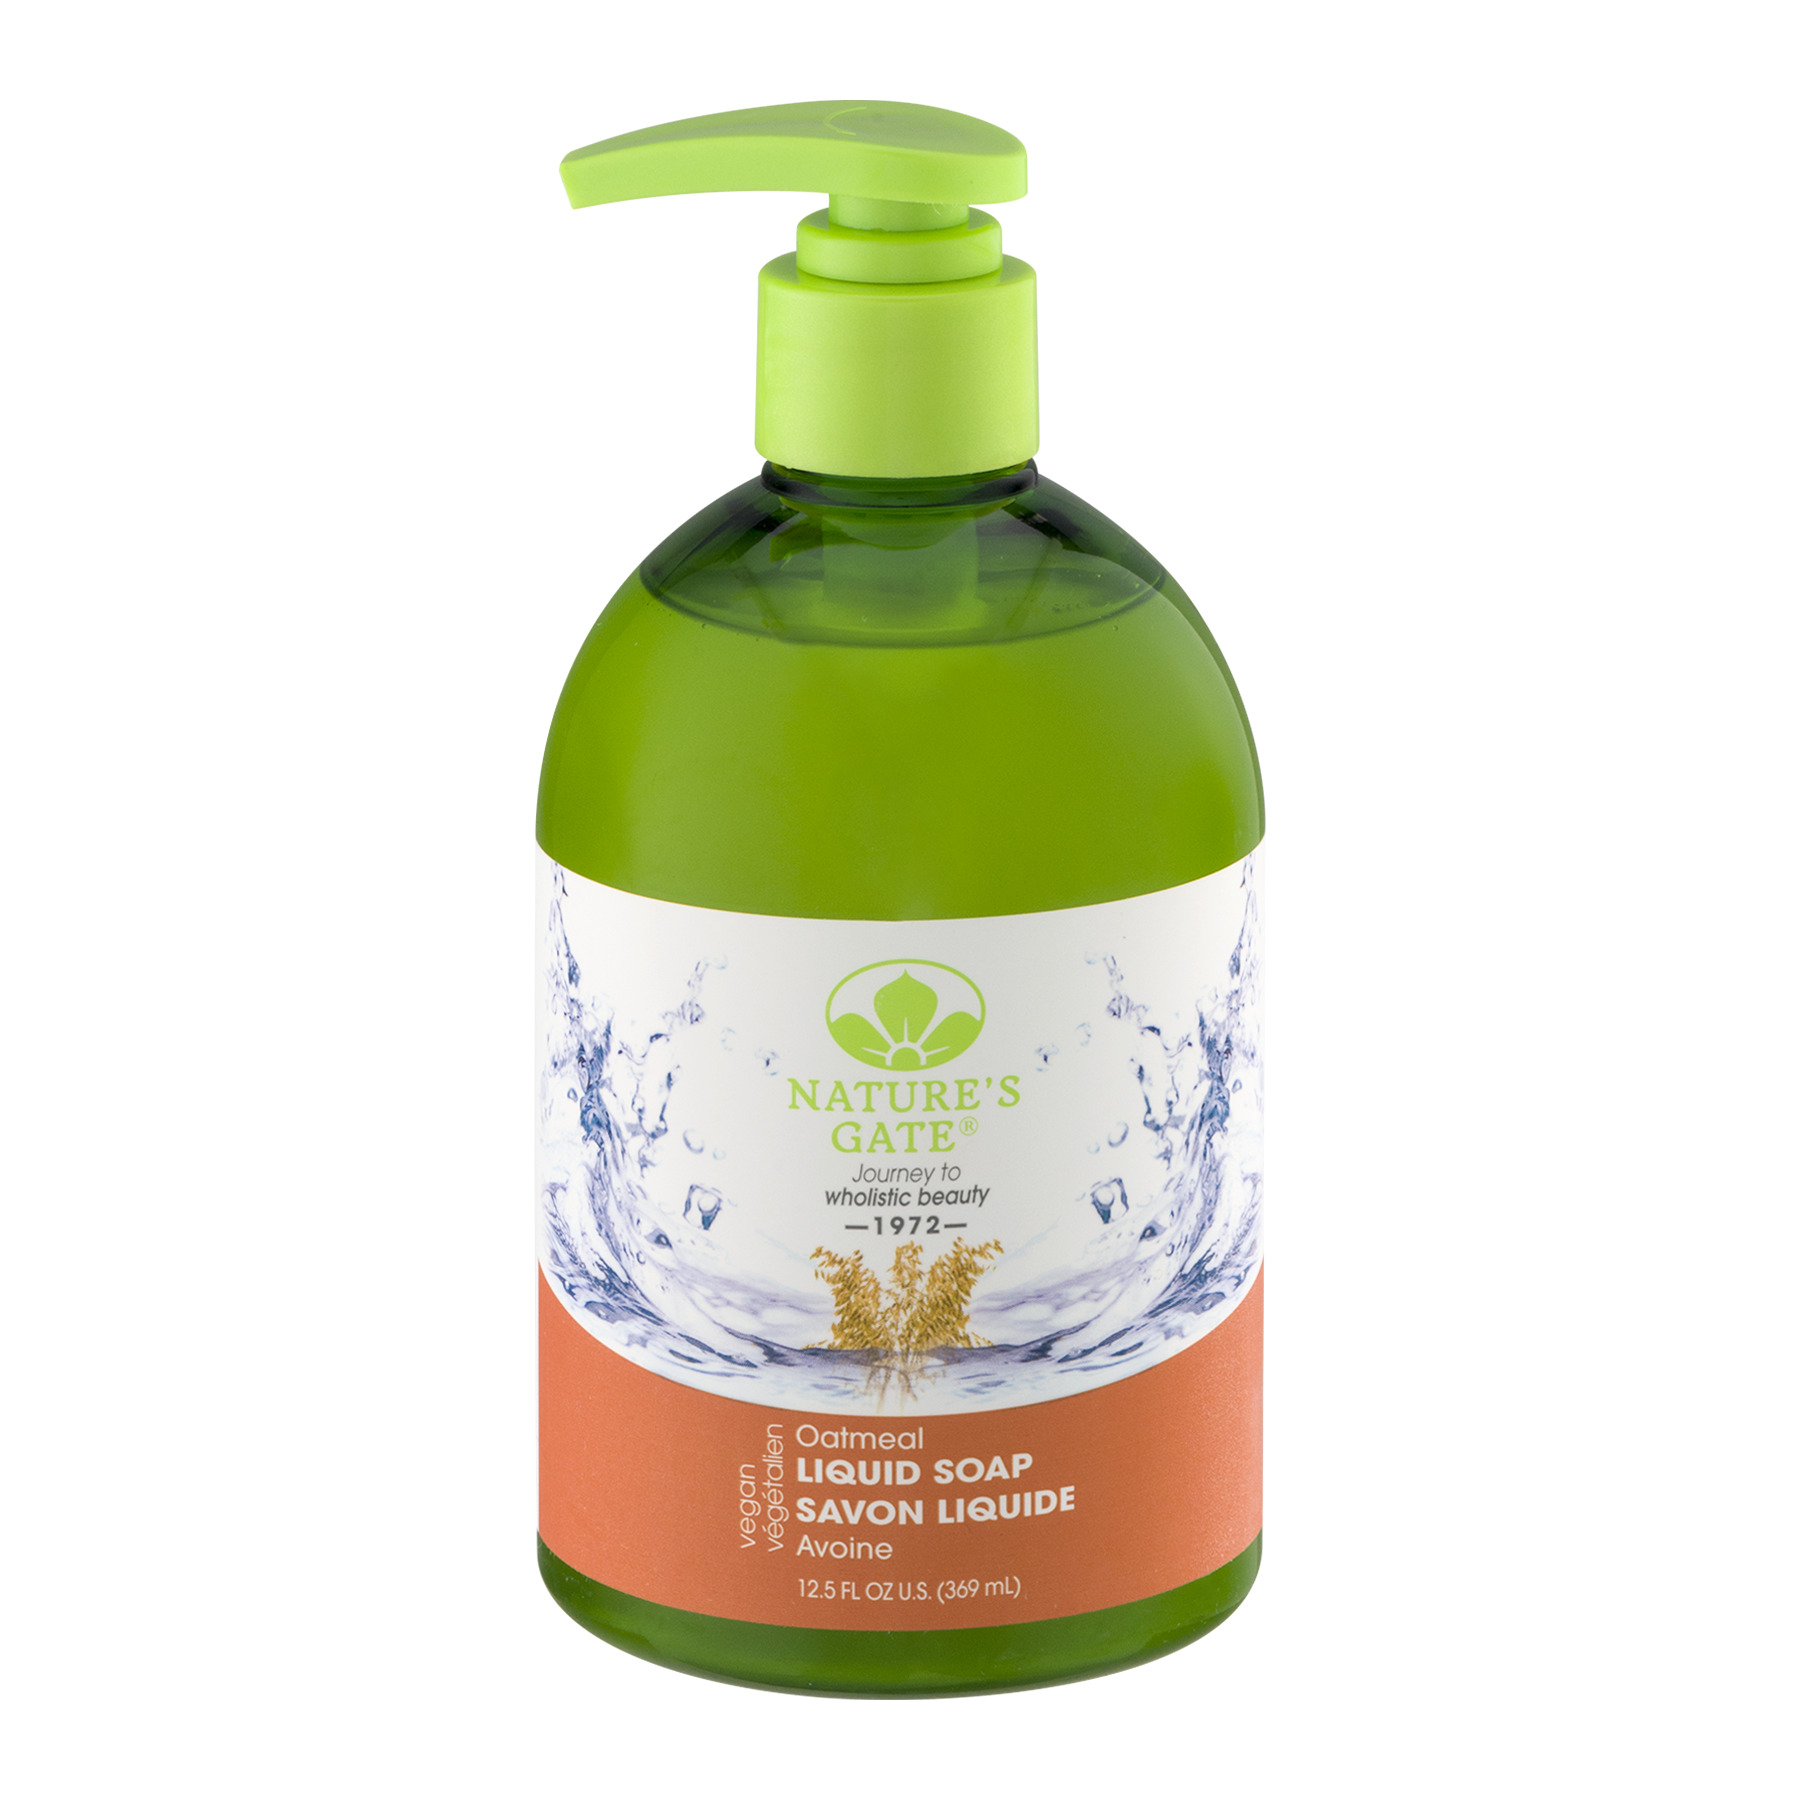 Nature's Gate Liquid Soap Oatmeal, 12.5 FL OZ